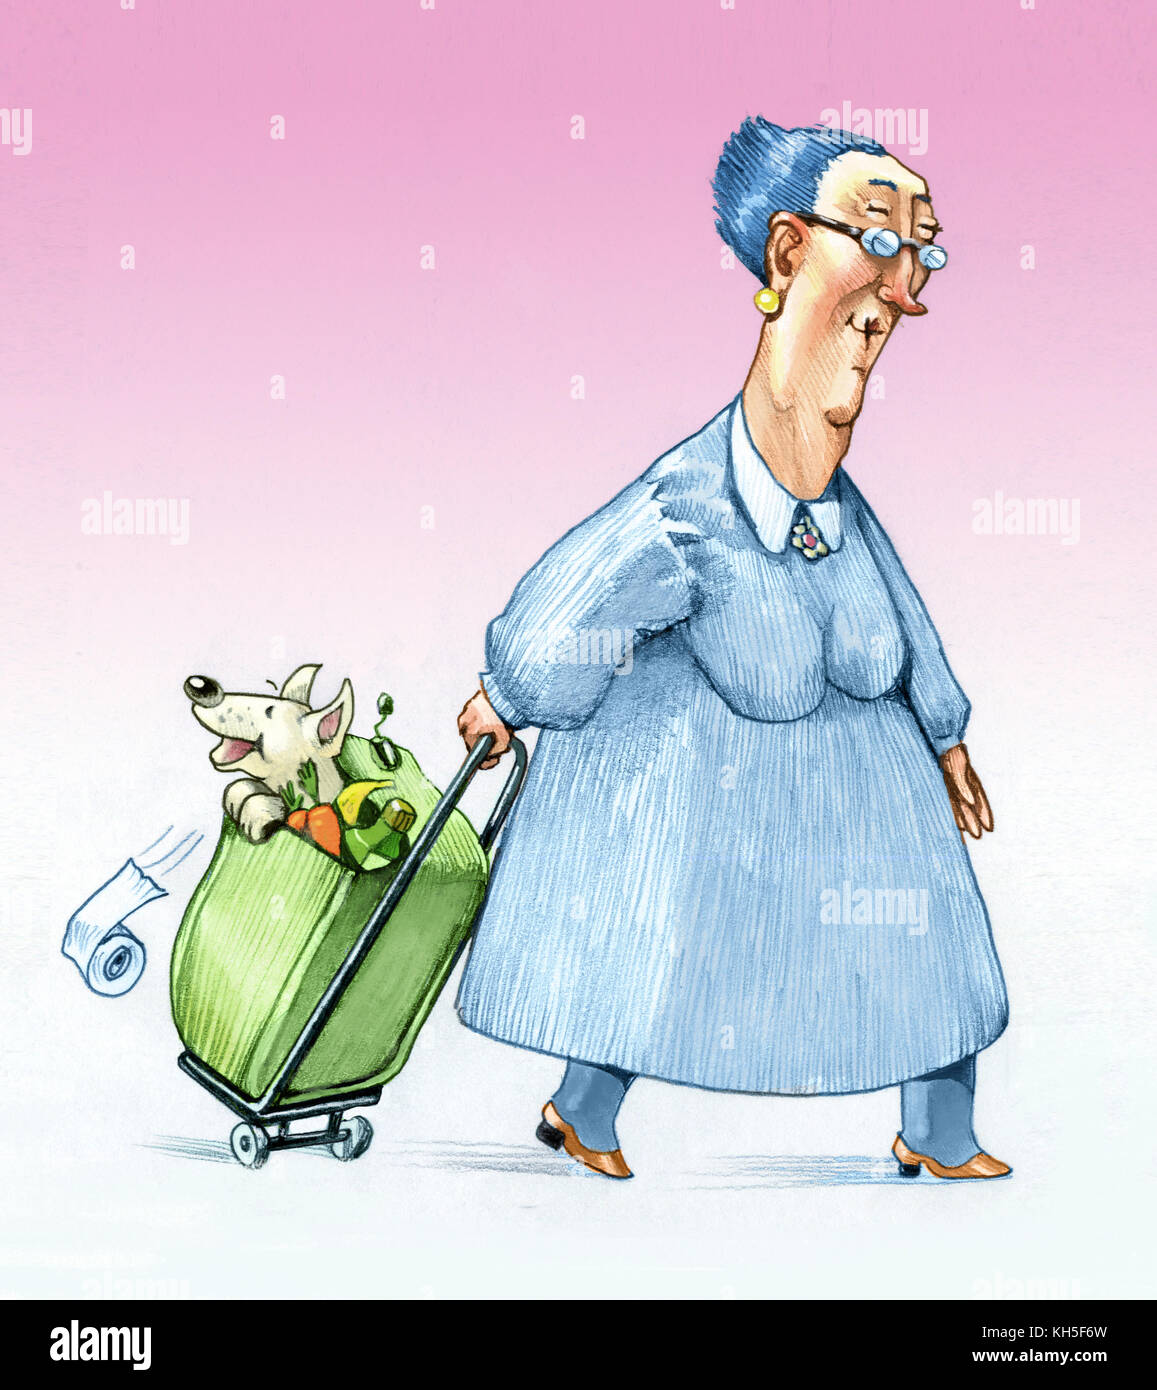 an elderly sympathetic comes back from shopping with a trolley with her puppy inside - Stock Image